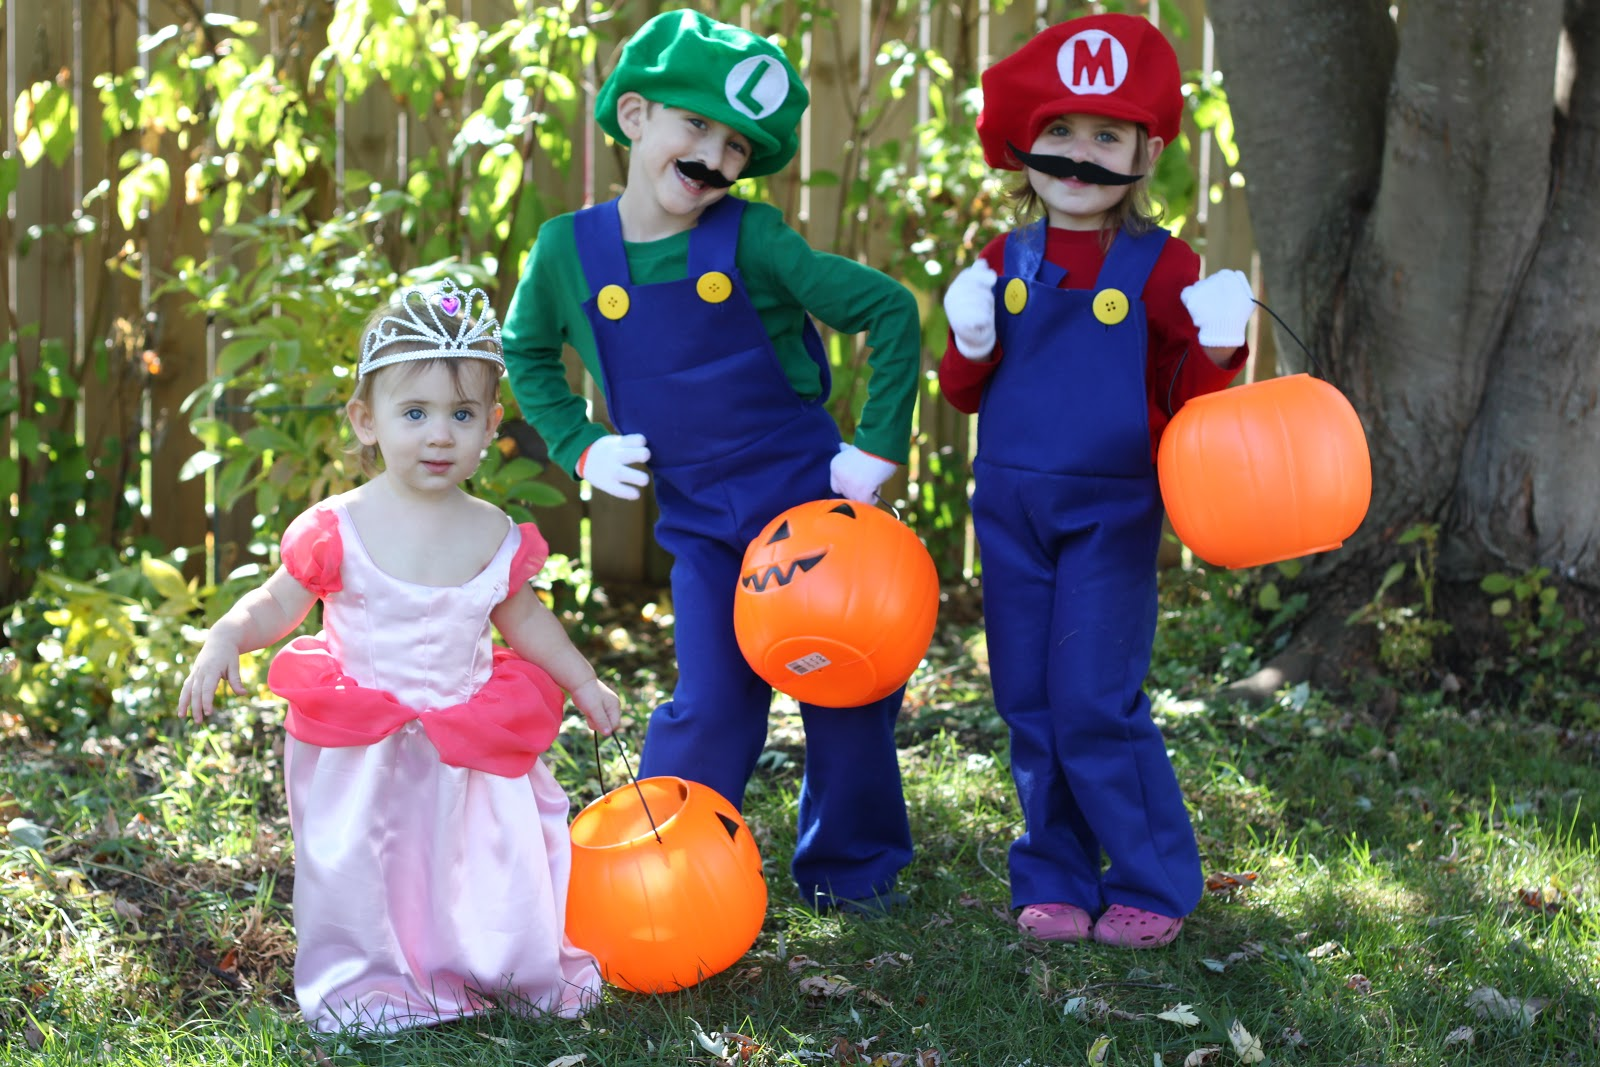 Mario and peach costume